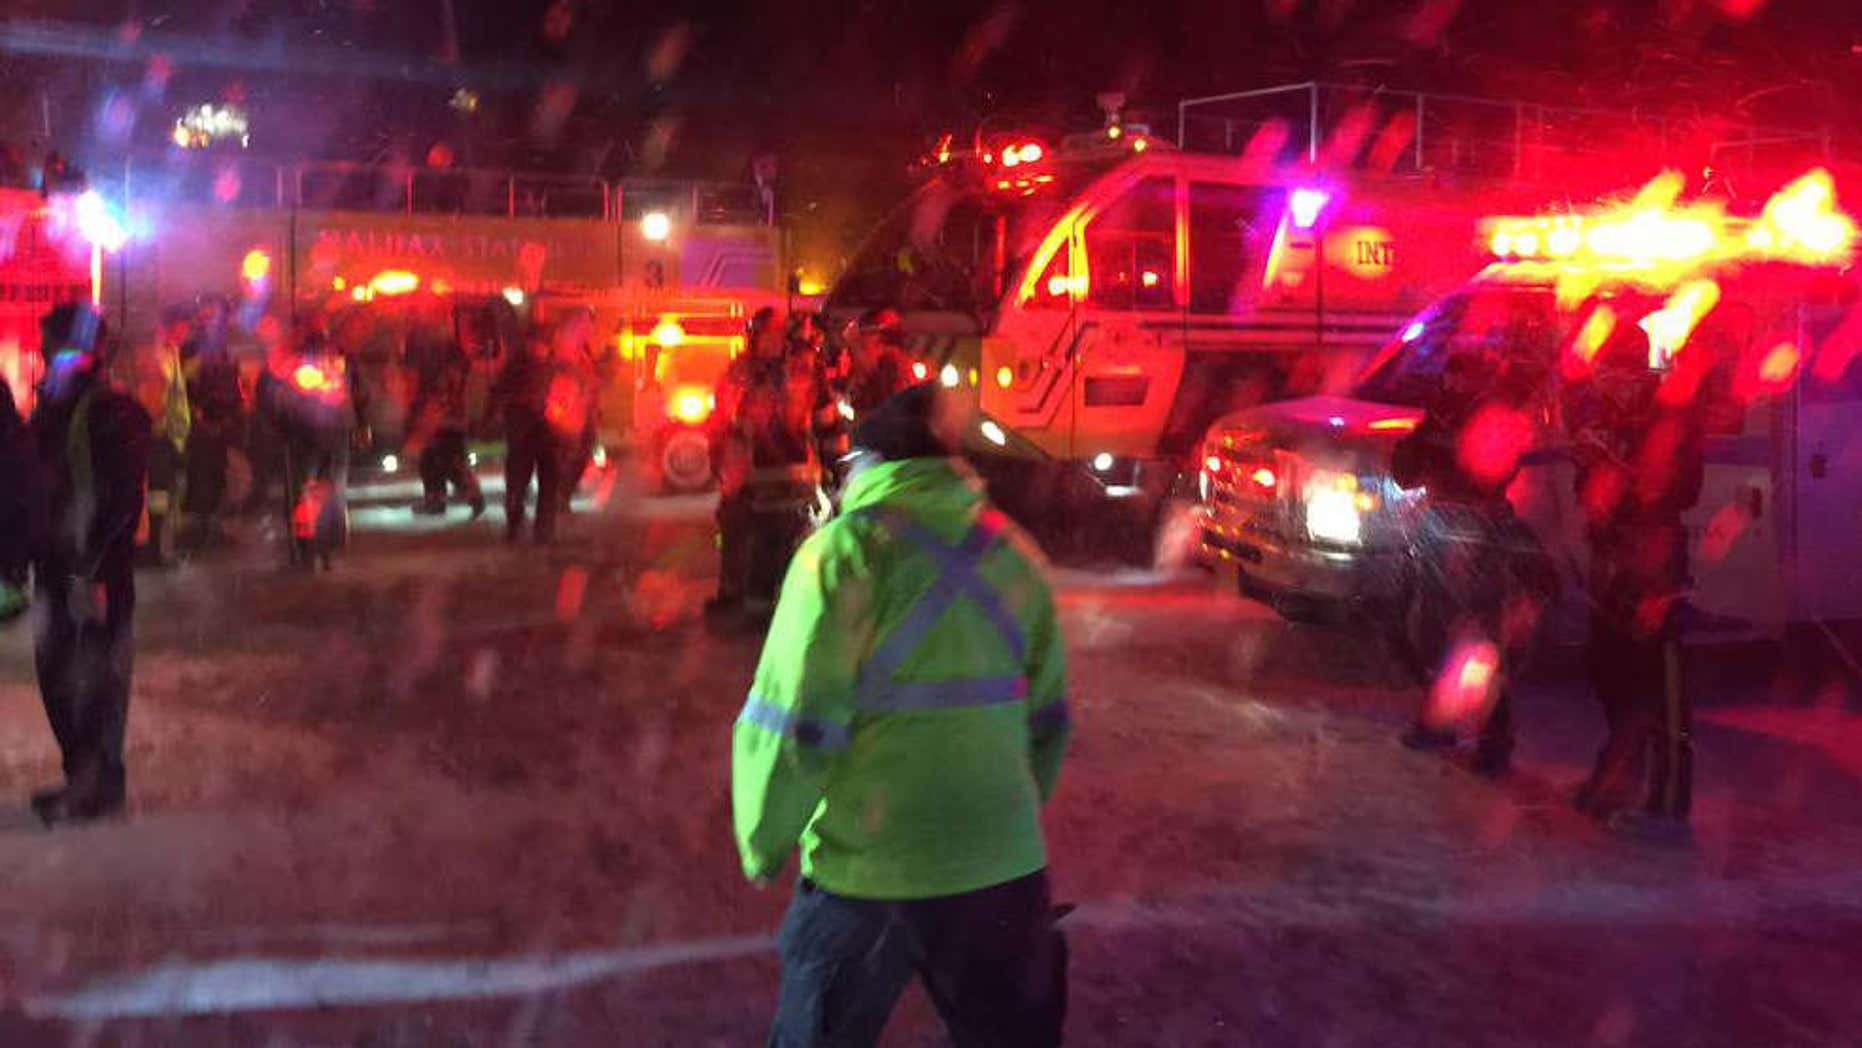 March 29, 2015: Fire trucks and an airport shuttle are on the scene at the Halifax International Airport early.